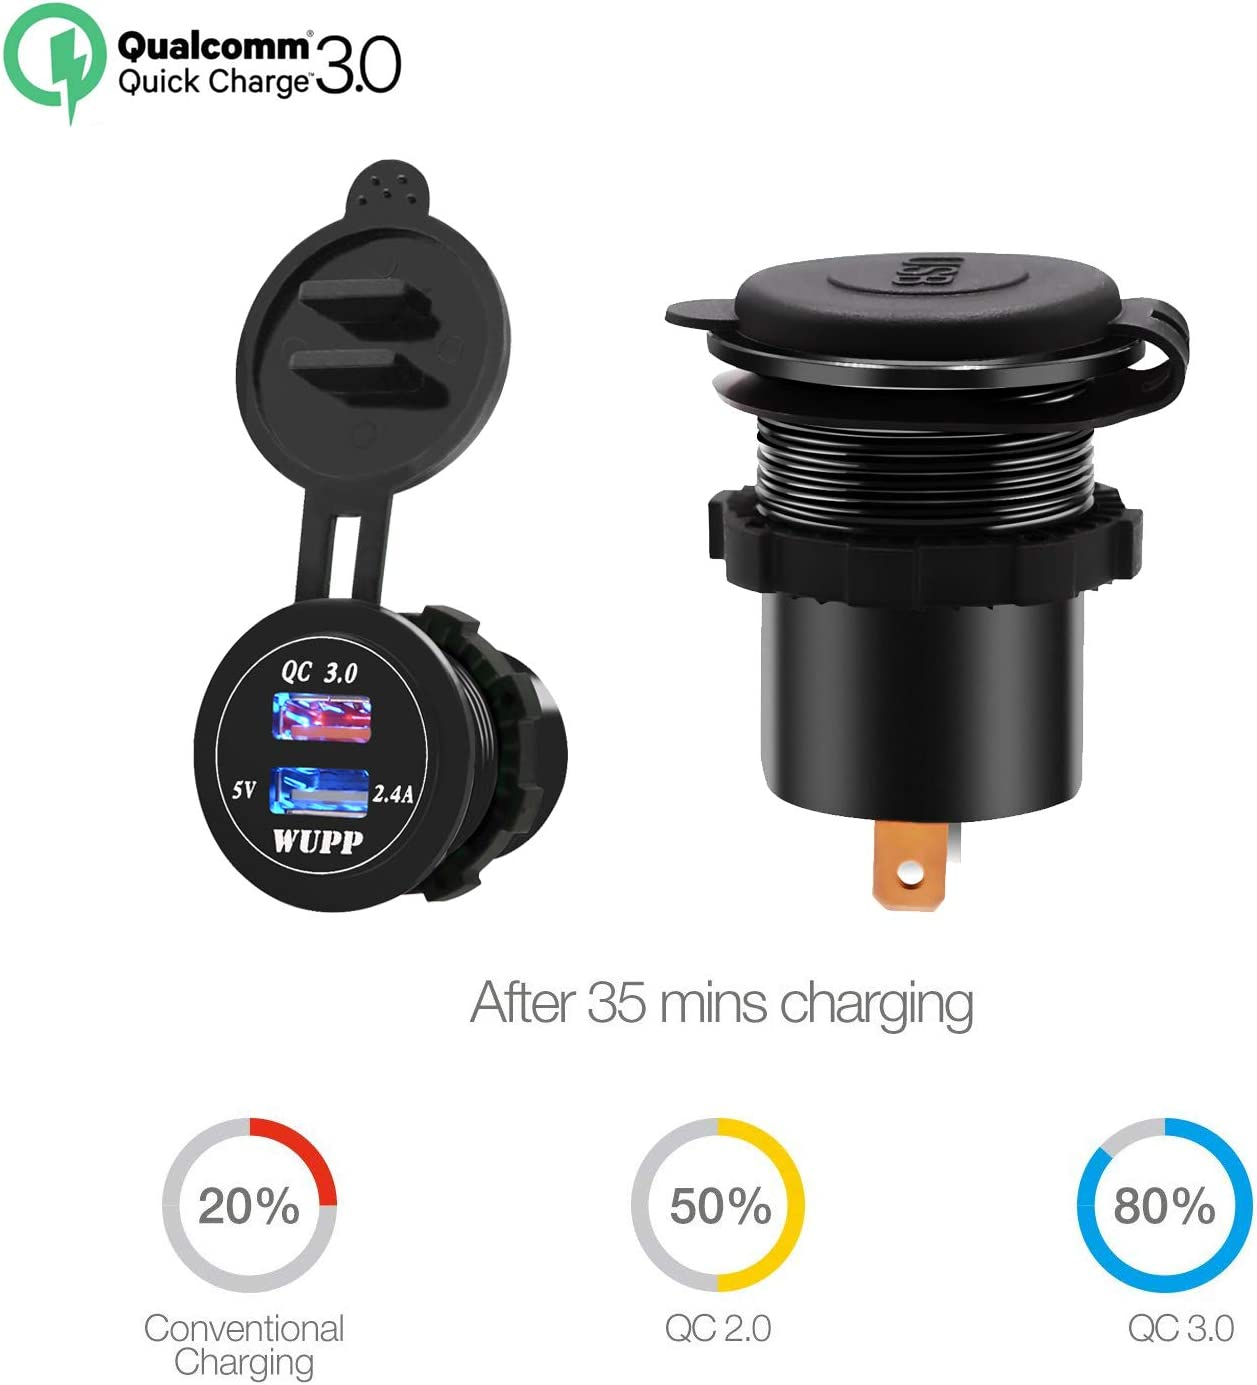 Quick Charge 3.0 Dual USB Charger Socket Waterproof for Car Boat Marine RV Mobile with Extension Wire TURN RAISE Dual USB Charger Socket Power Outlet Green Light